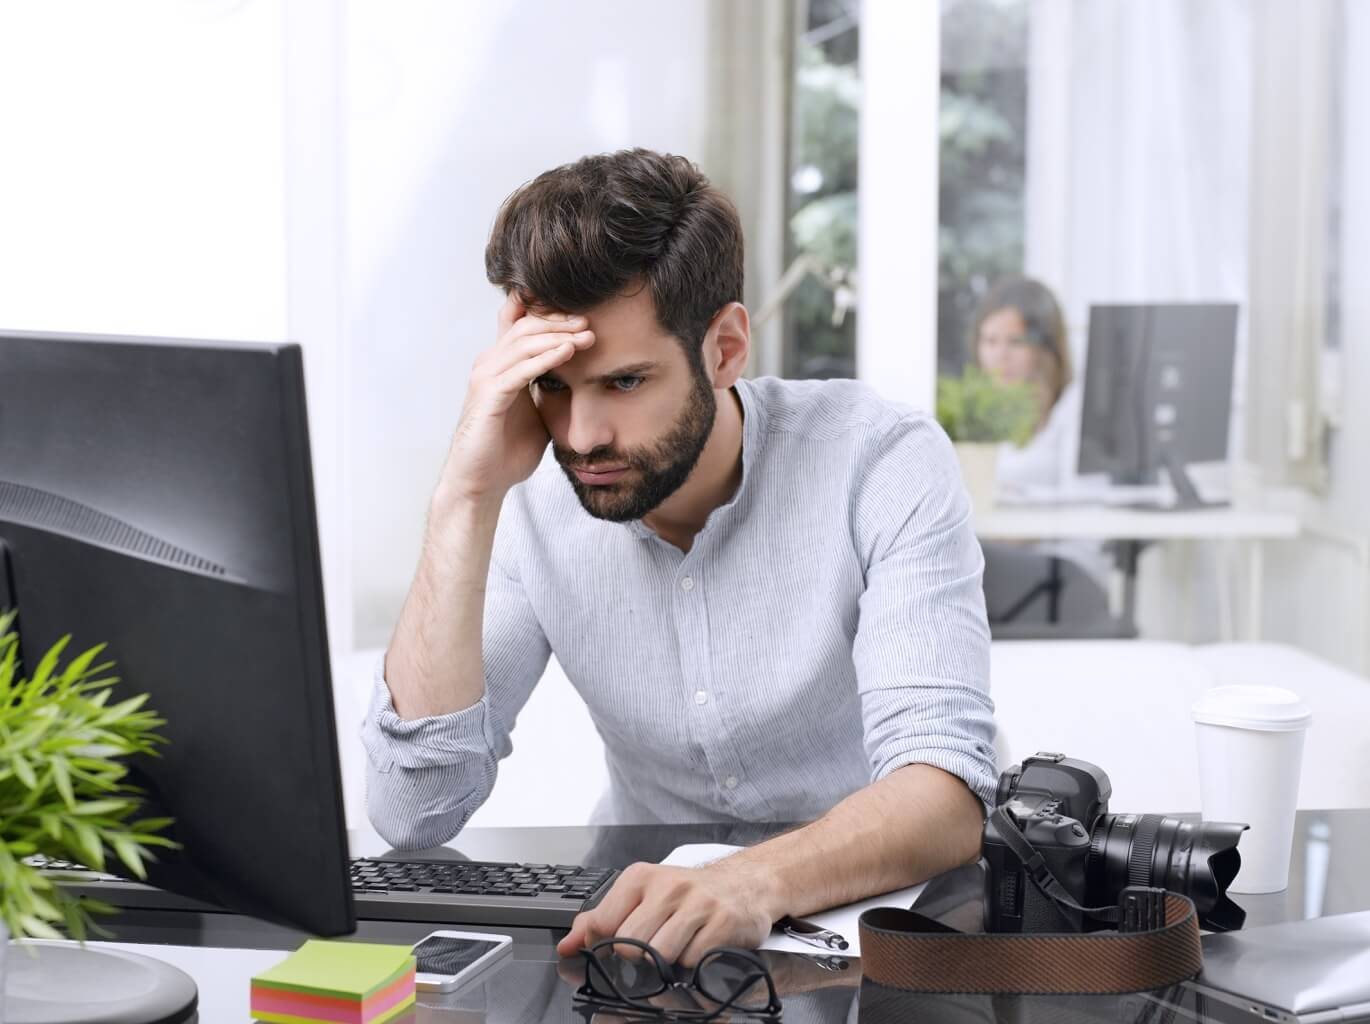 Small business owner worried about business performance